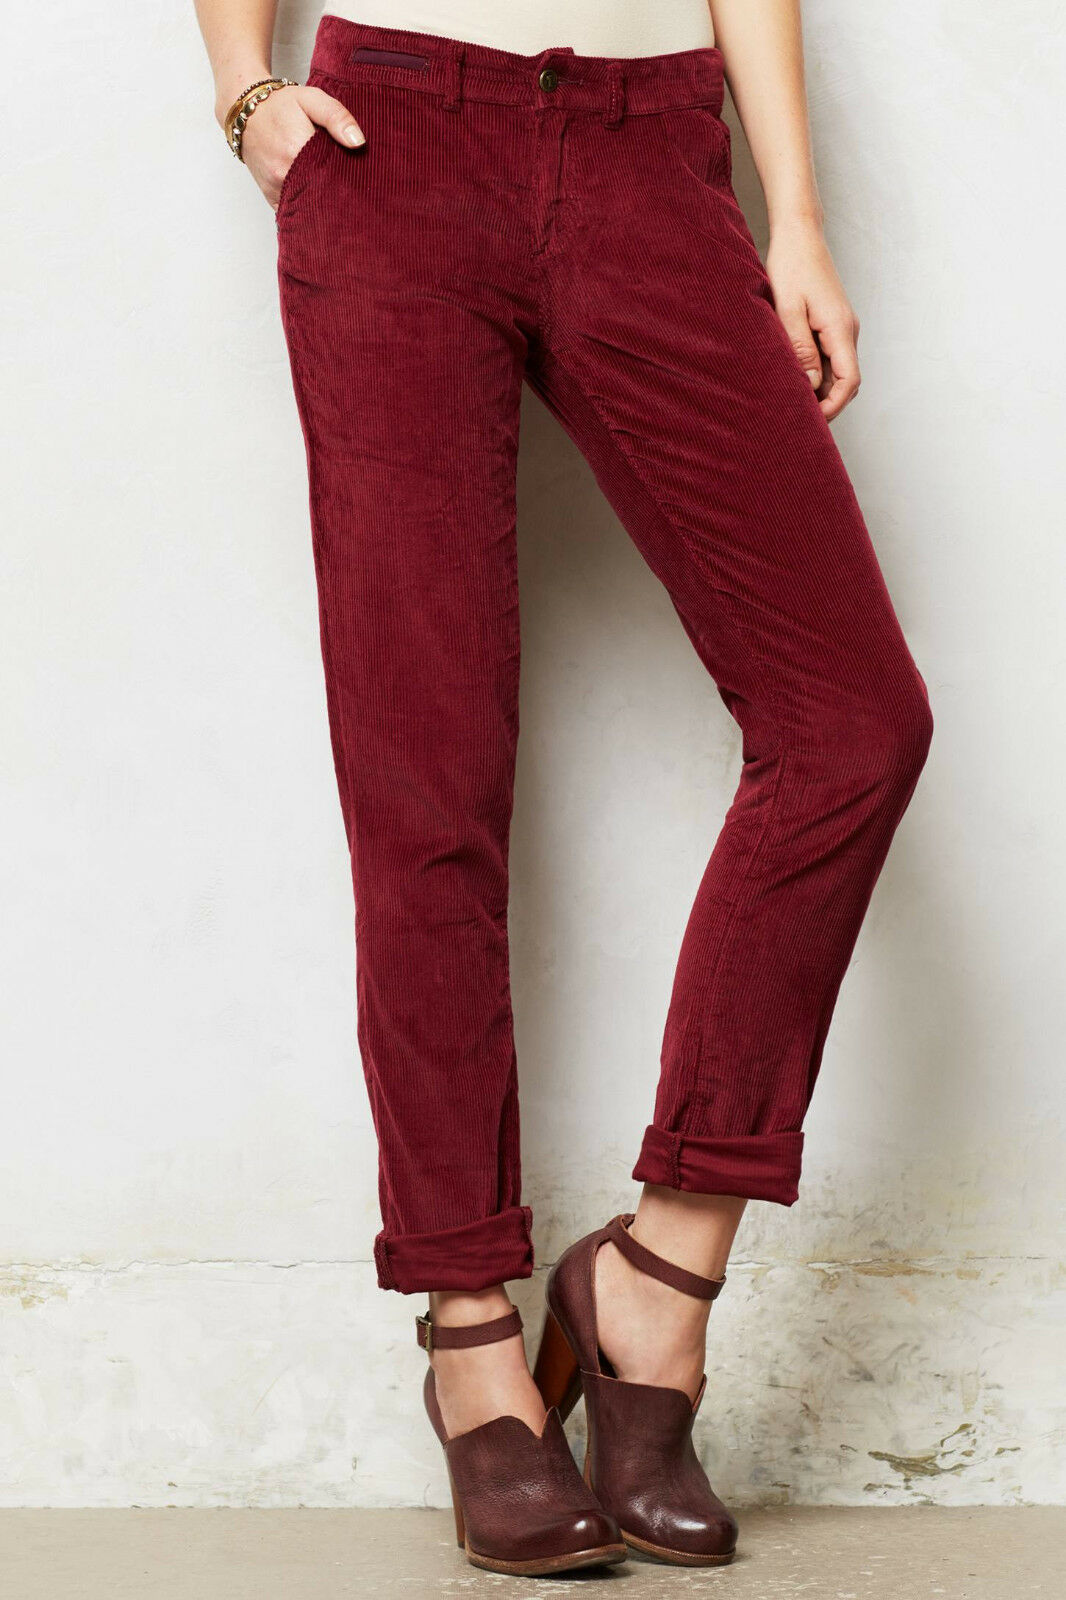 Pilcro Relaxed Cords Pants Size 30 Petite, 31 Regular Wine NW ANTHROPOLOGIE Tag